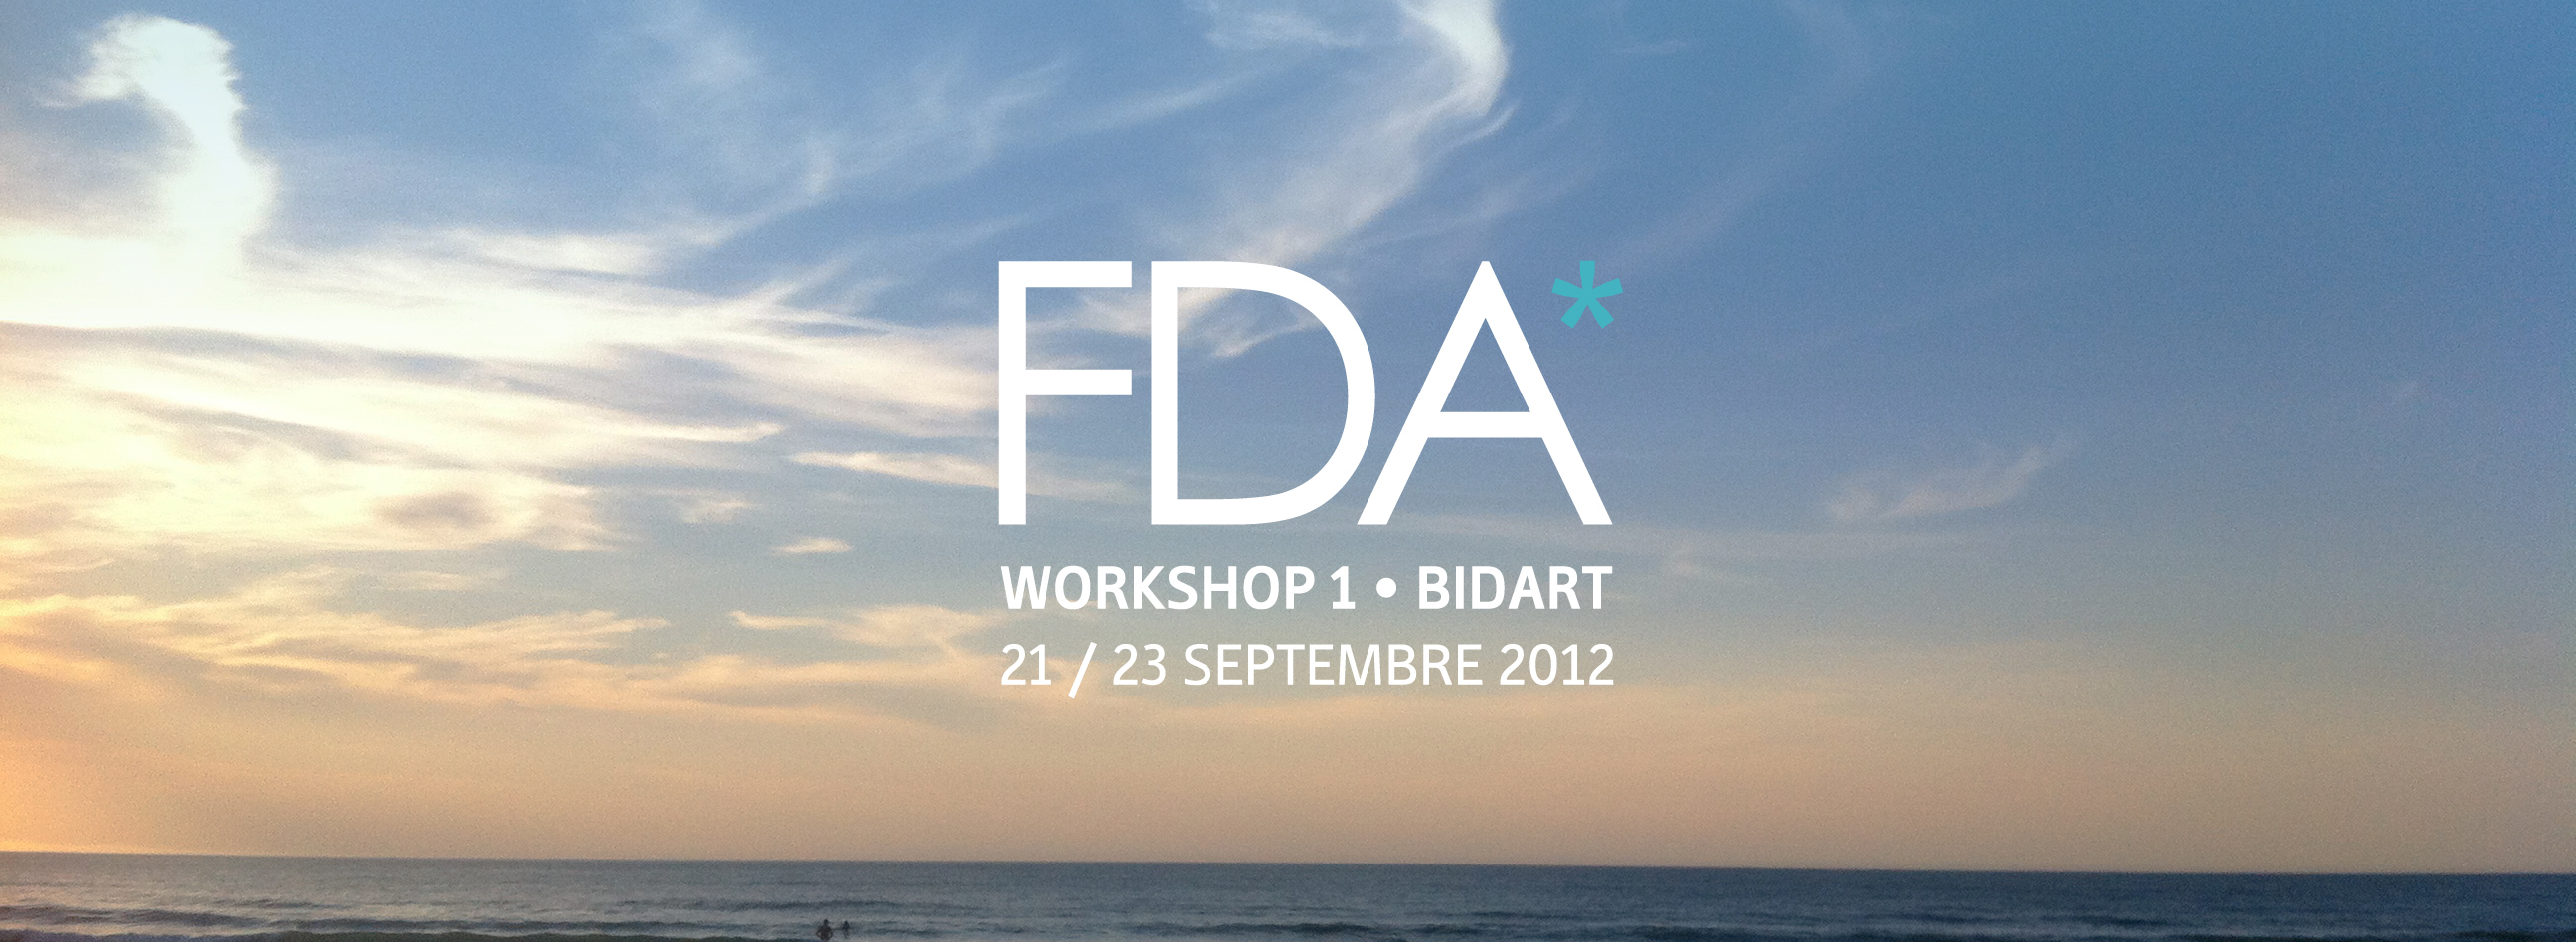 FDA workshop